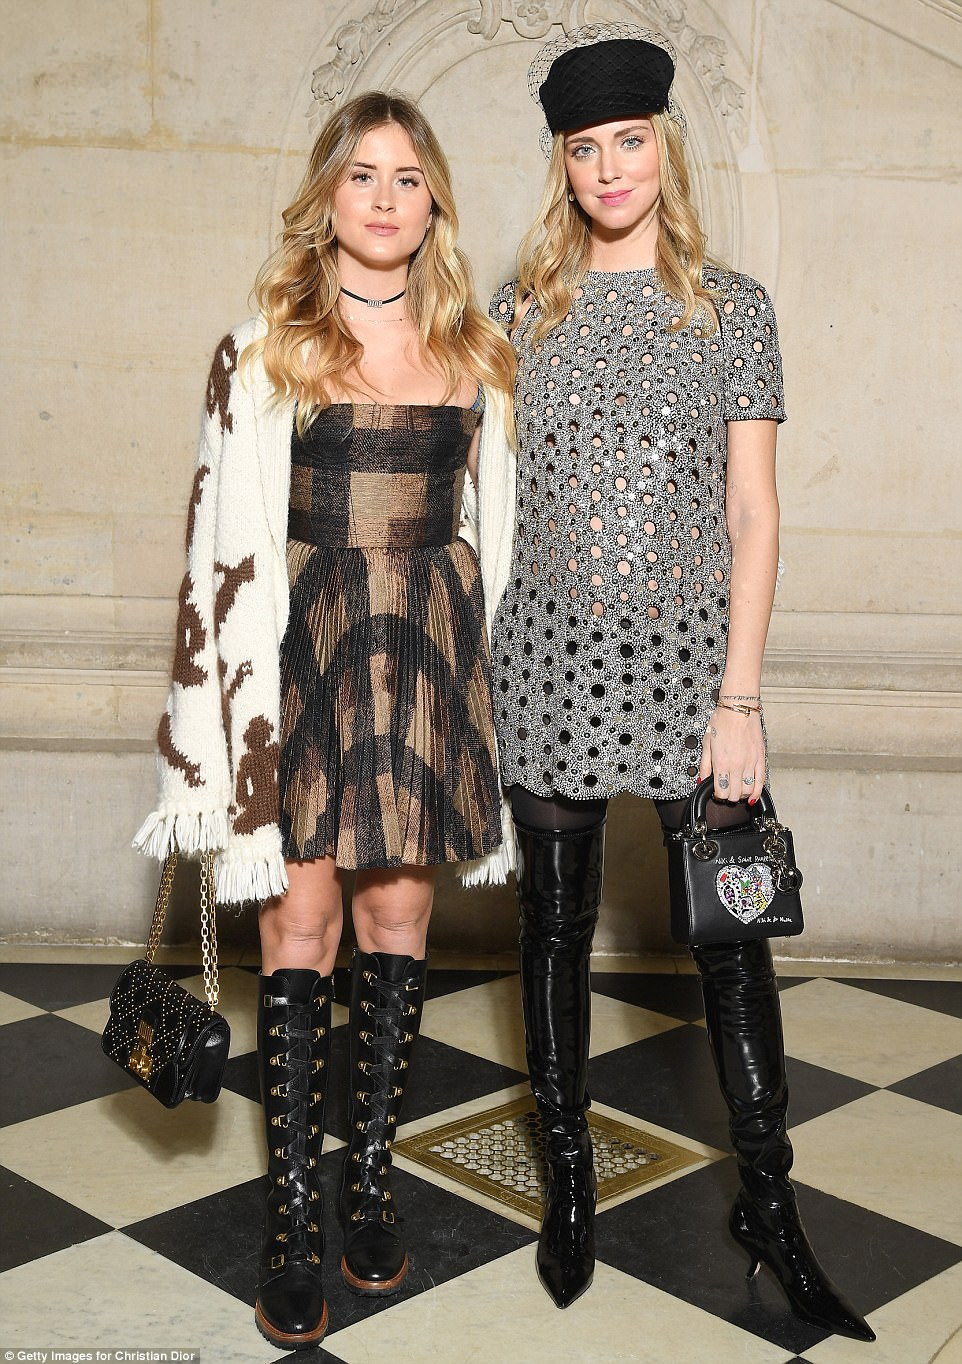 Sister, sister: Style blogger Chiara Ferragni posed with her younger sisterValentina